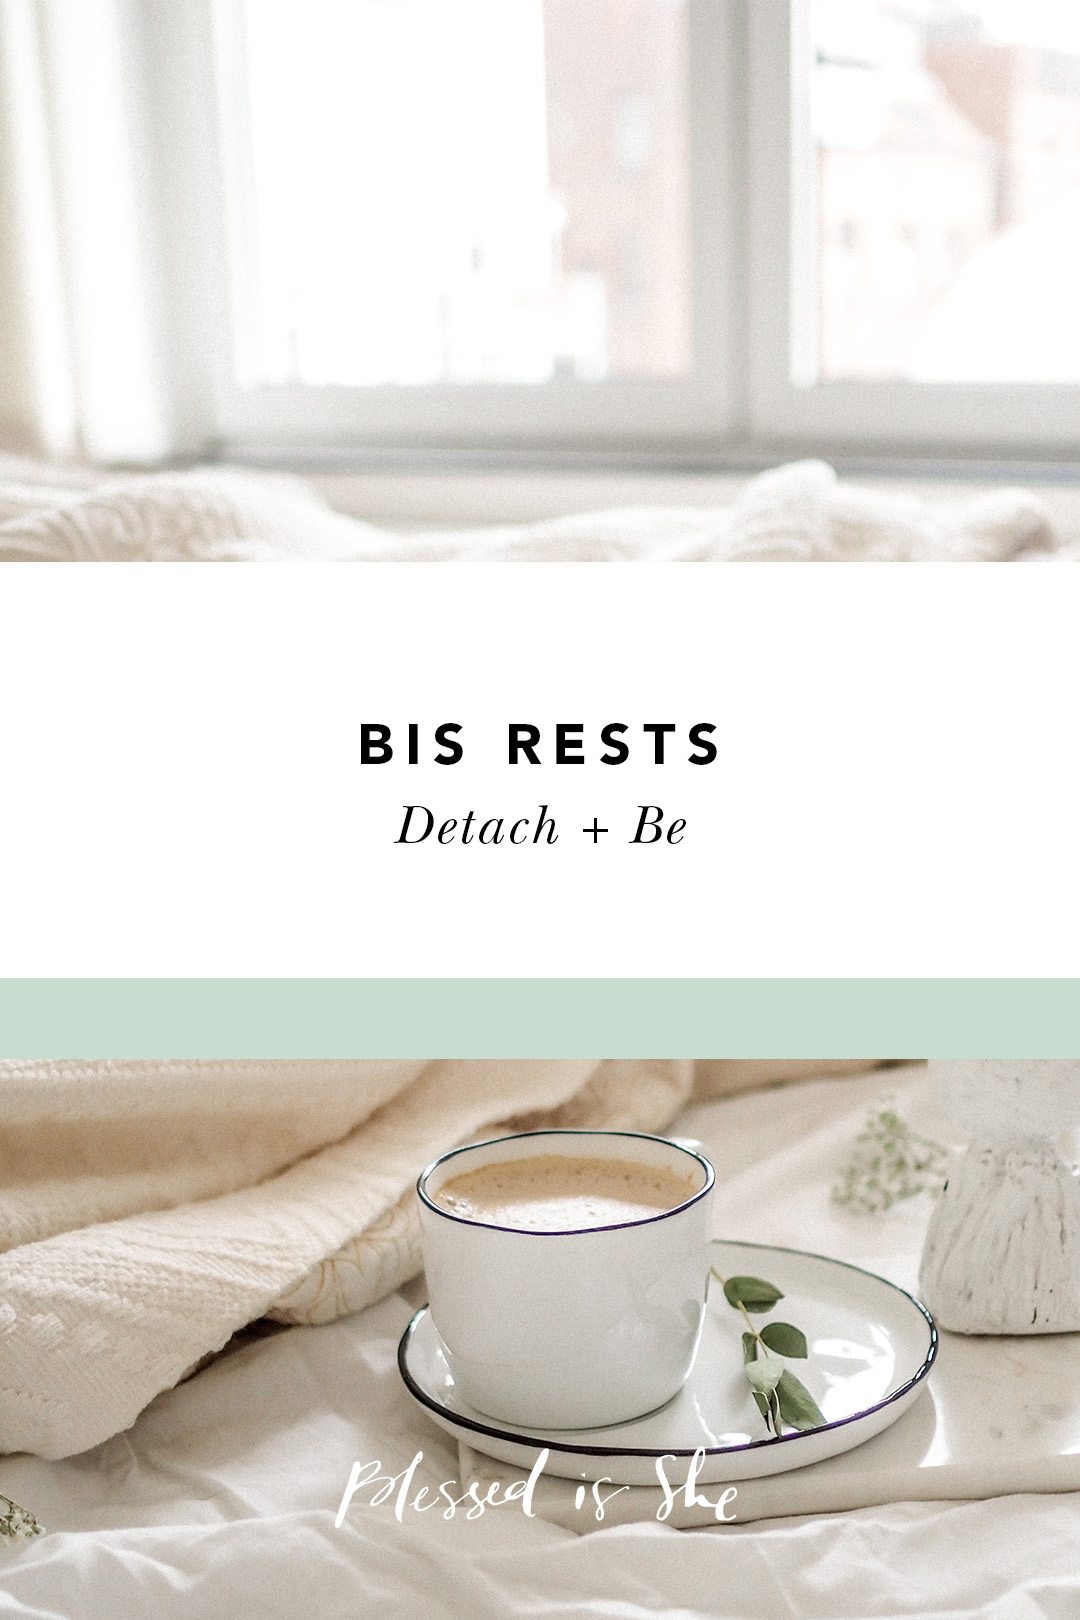 bis rests detach and be